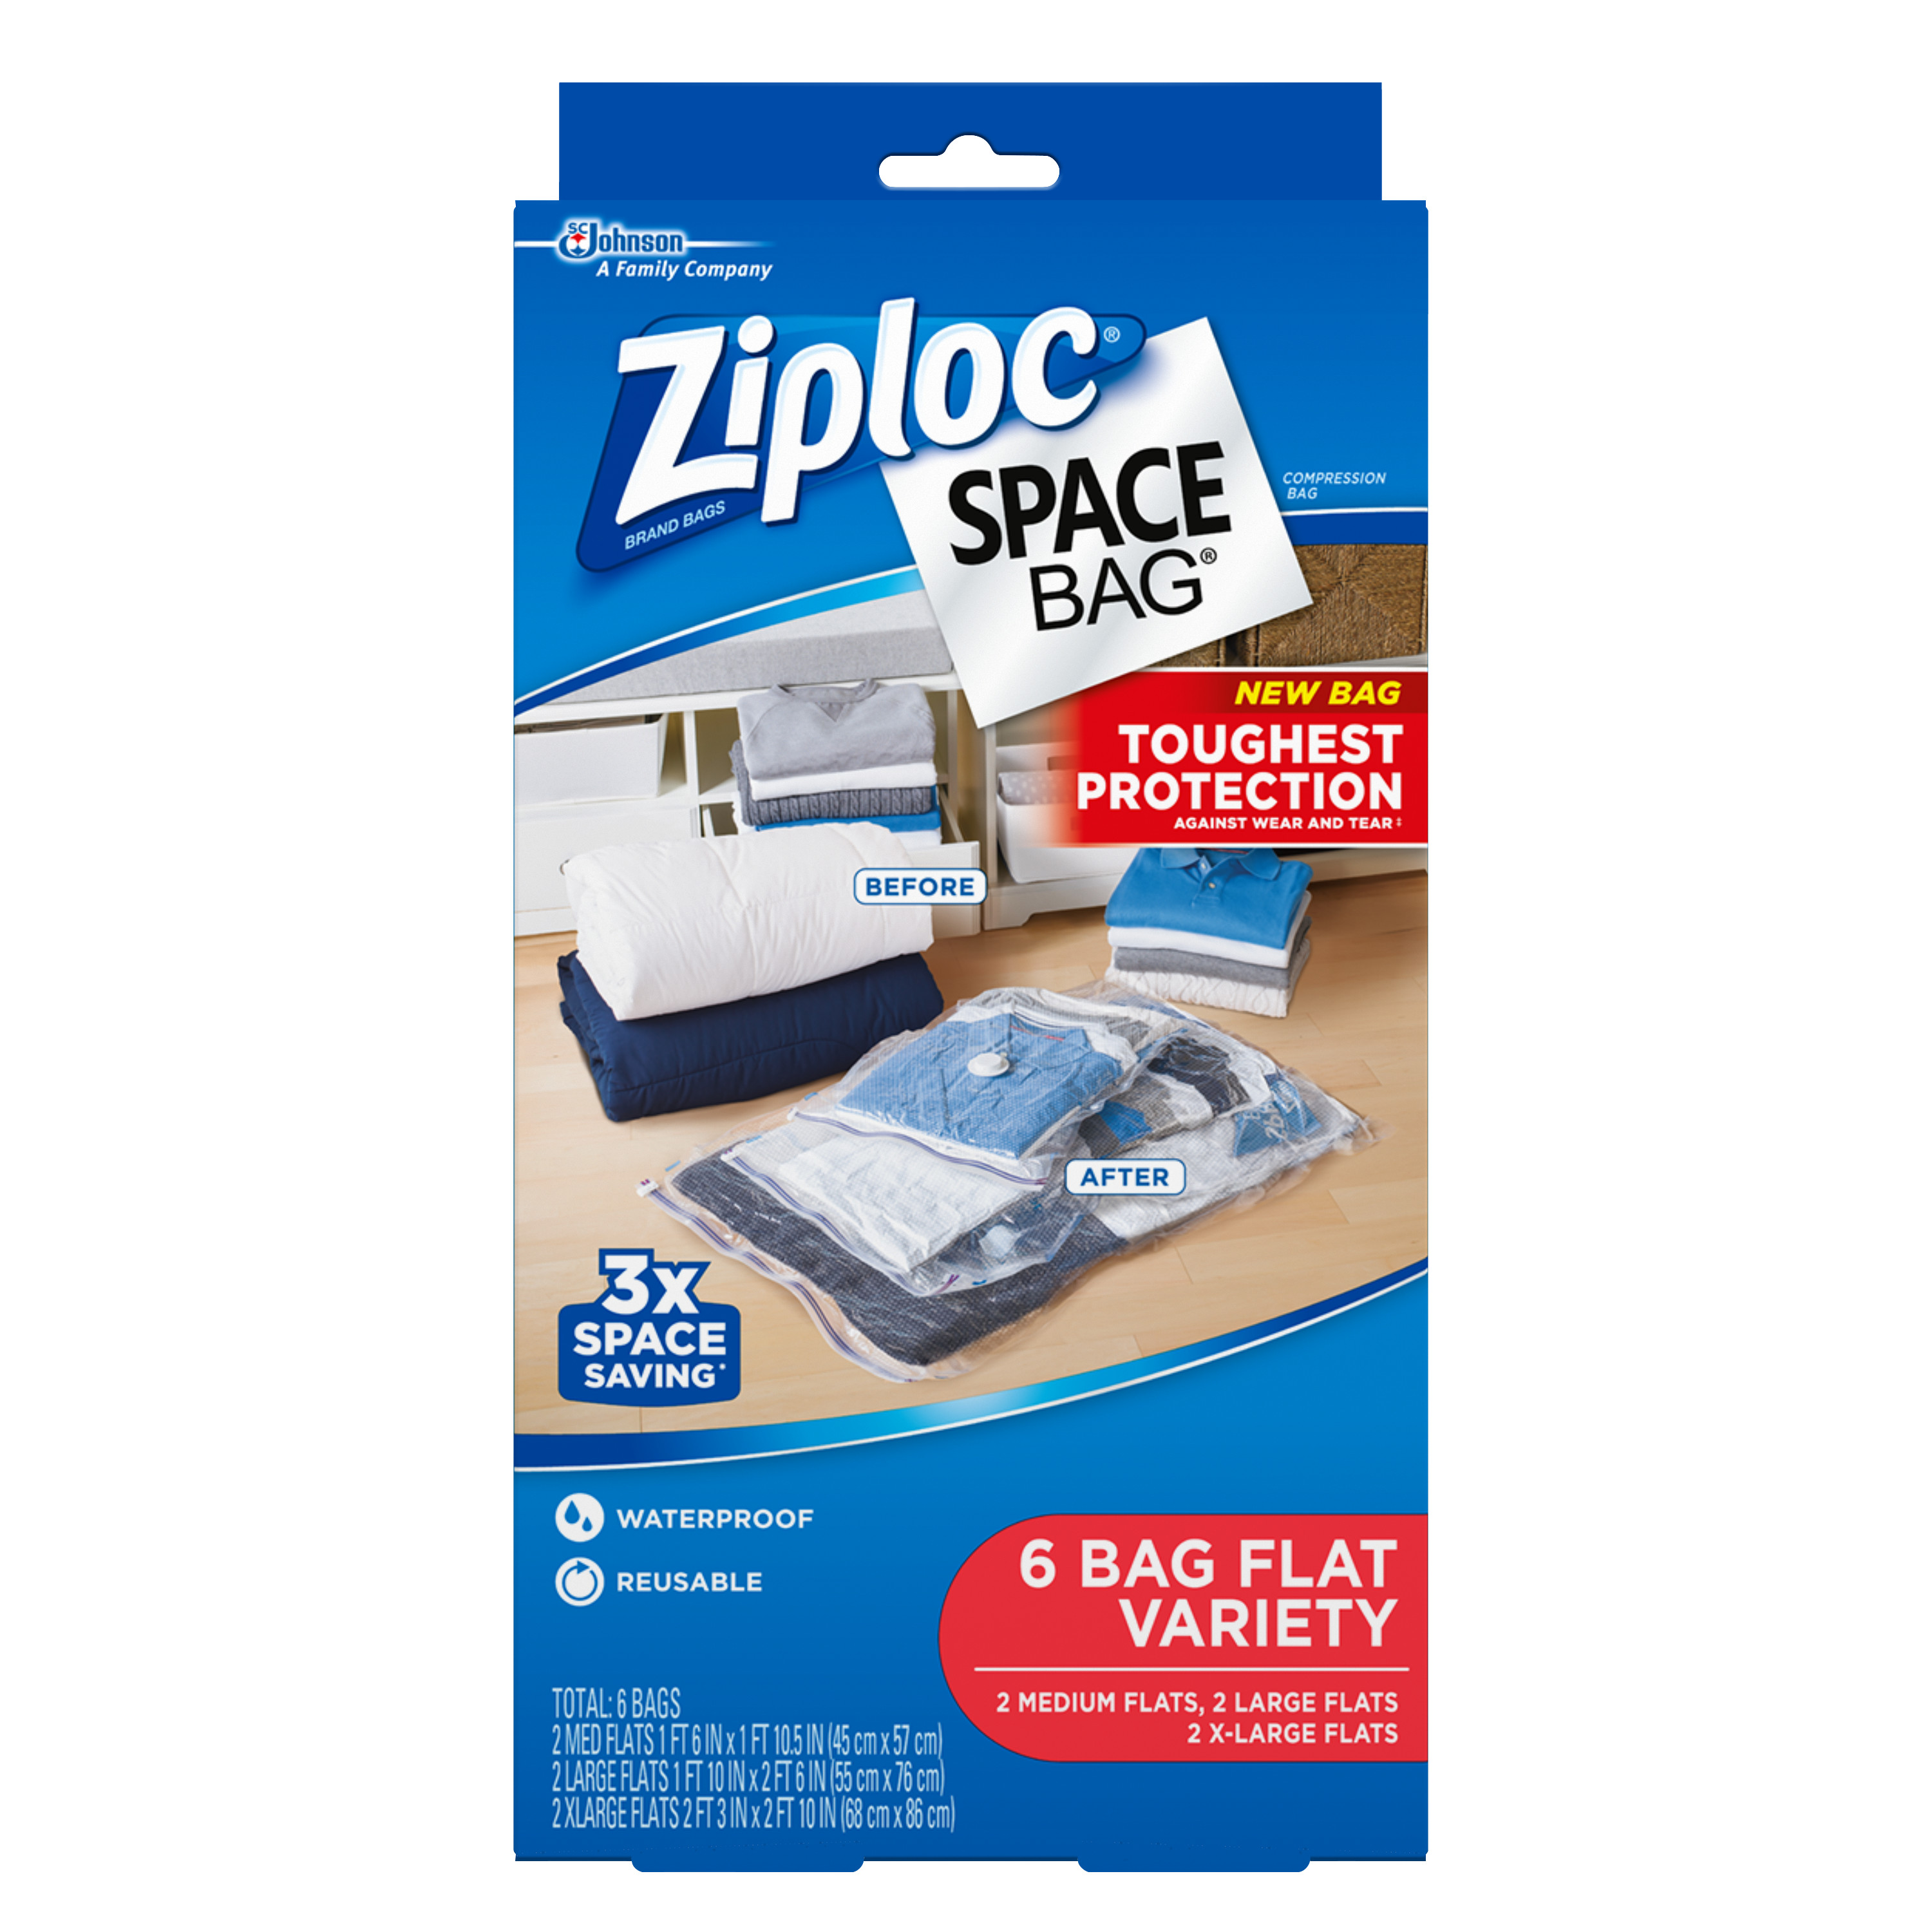 Ziploc Space Bags 6 count Flat Bags: 2 Medium, 2 Large, 2 Extra Large